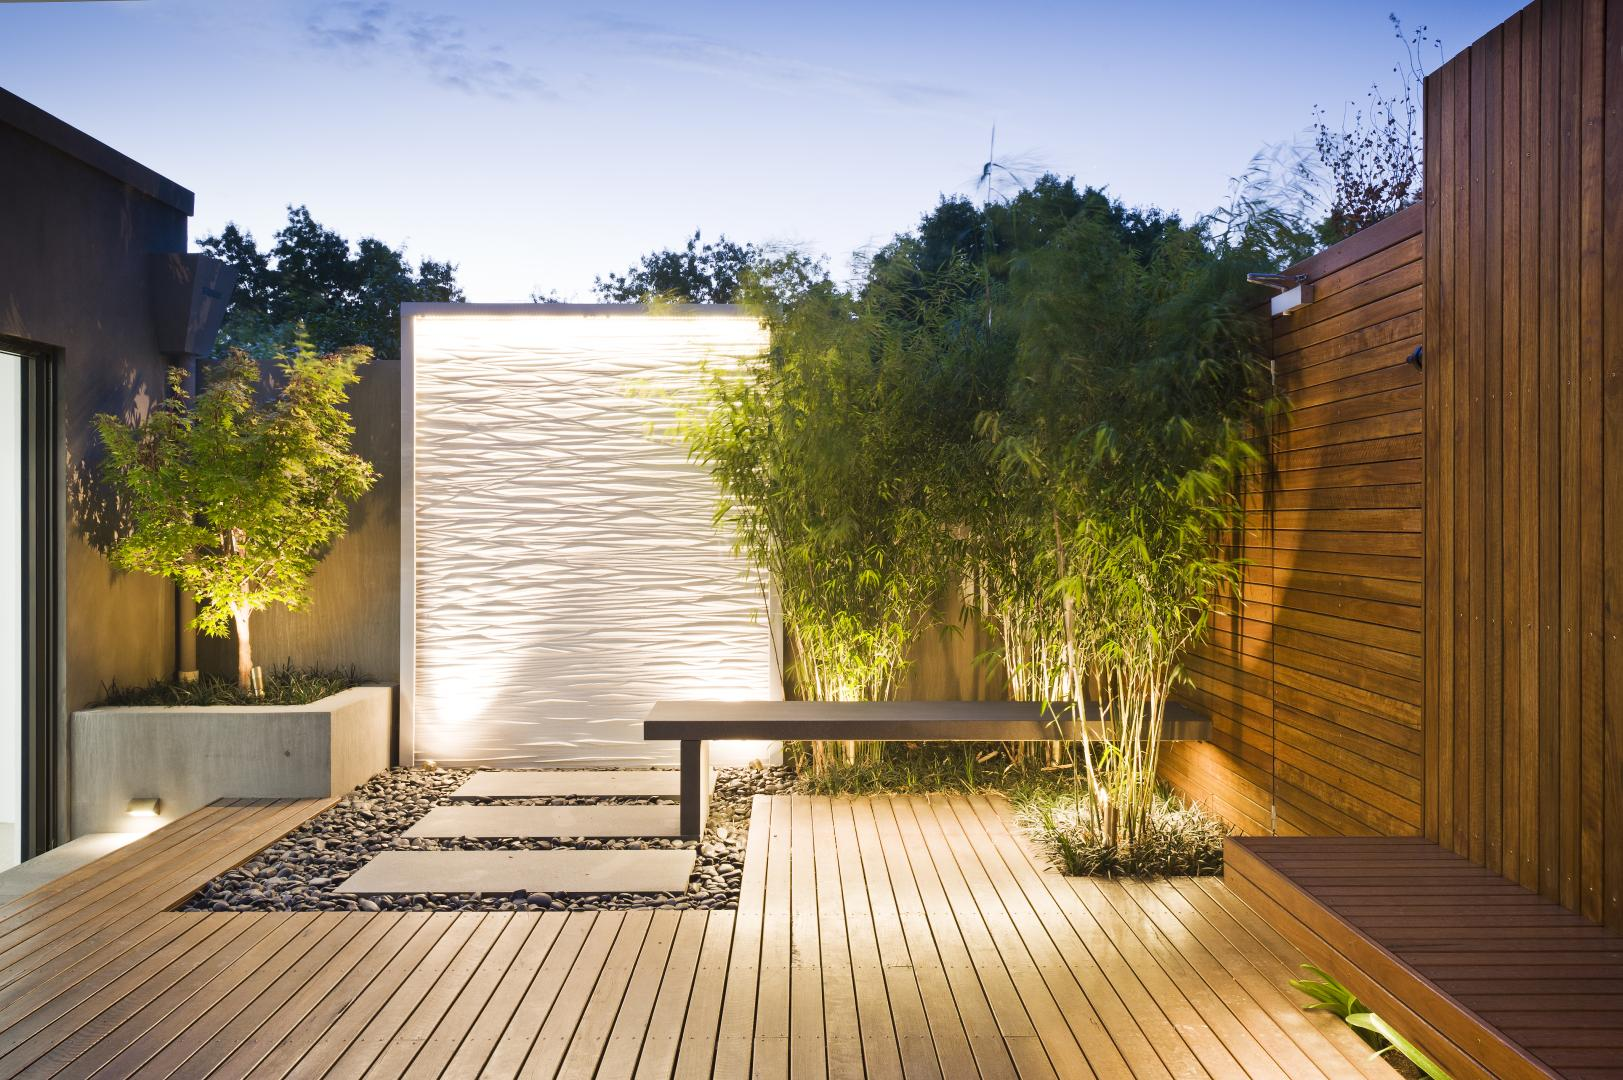 Mix of traditional and modern architecture which gives for Small modern garden design ideas